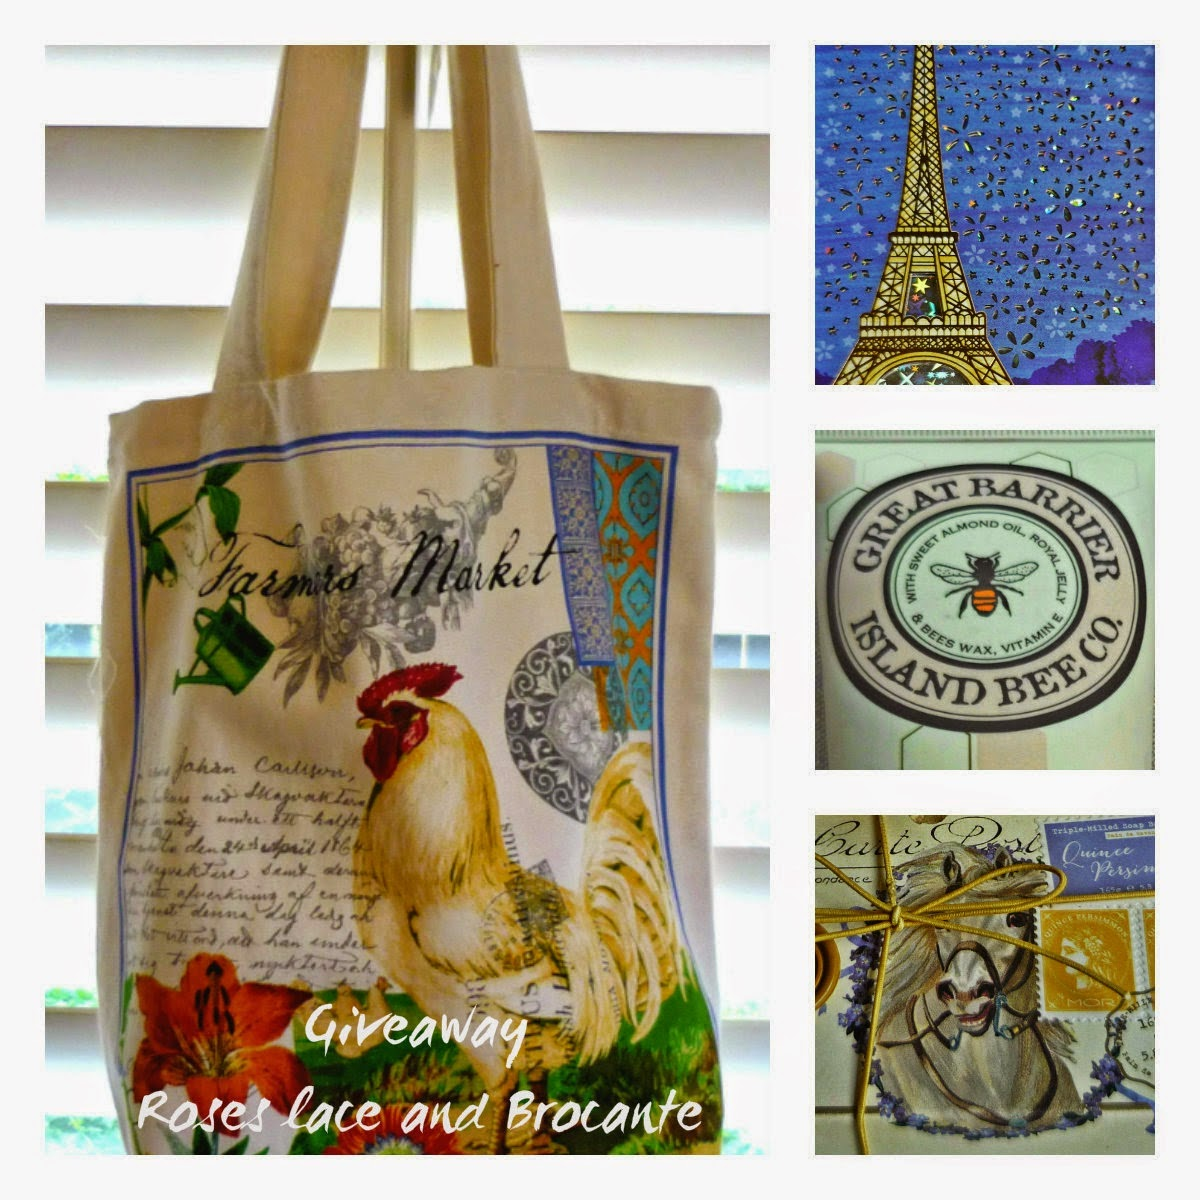 A BEAUTIFUL GIVEAWAY WITH FRENCH INSPIRED GIFTS, from dear Shane.